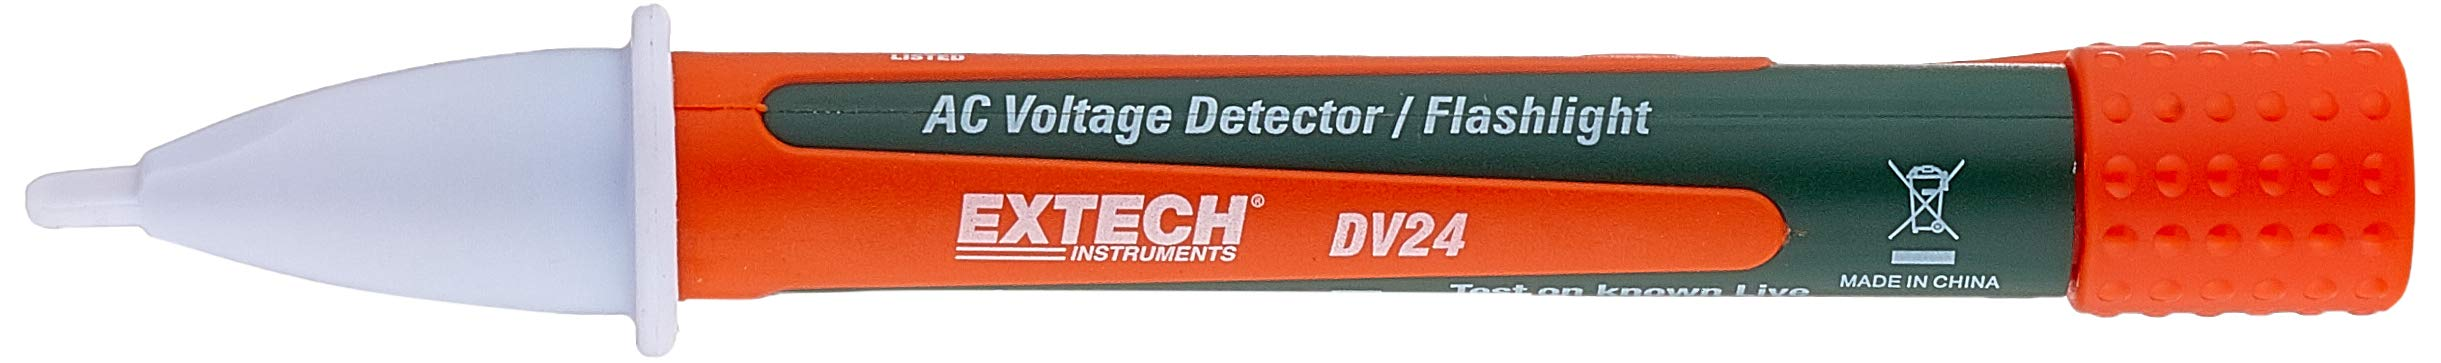 Extech DV24 CAT IV 50-1000V Wide Range AC Voltage Detector and Flashlight